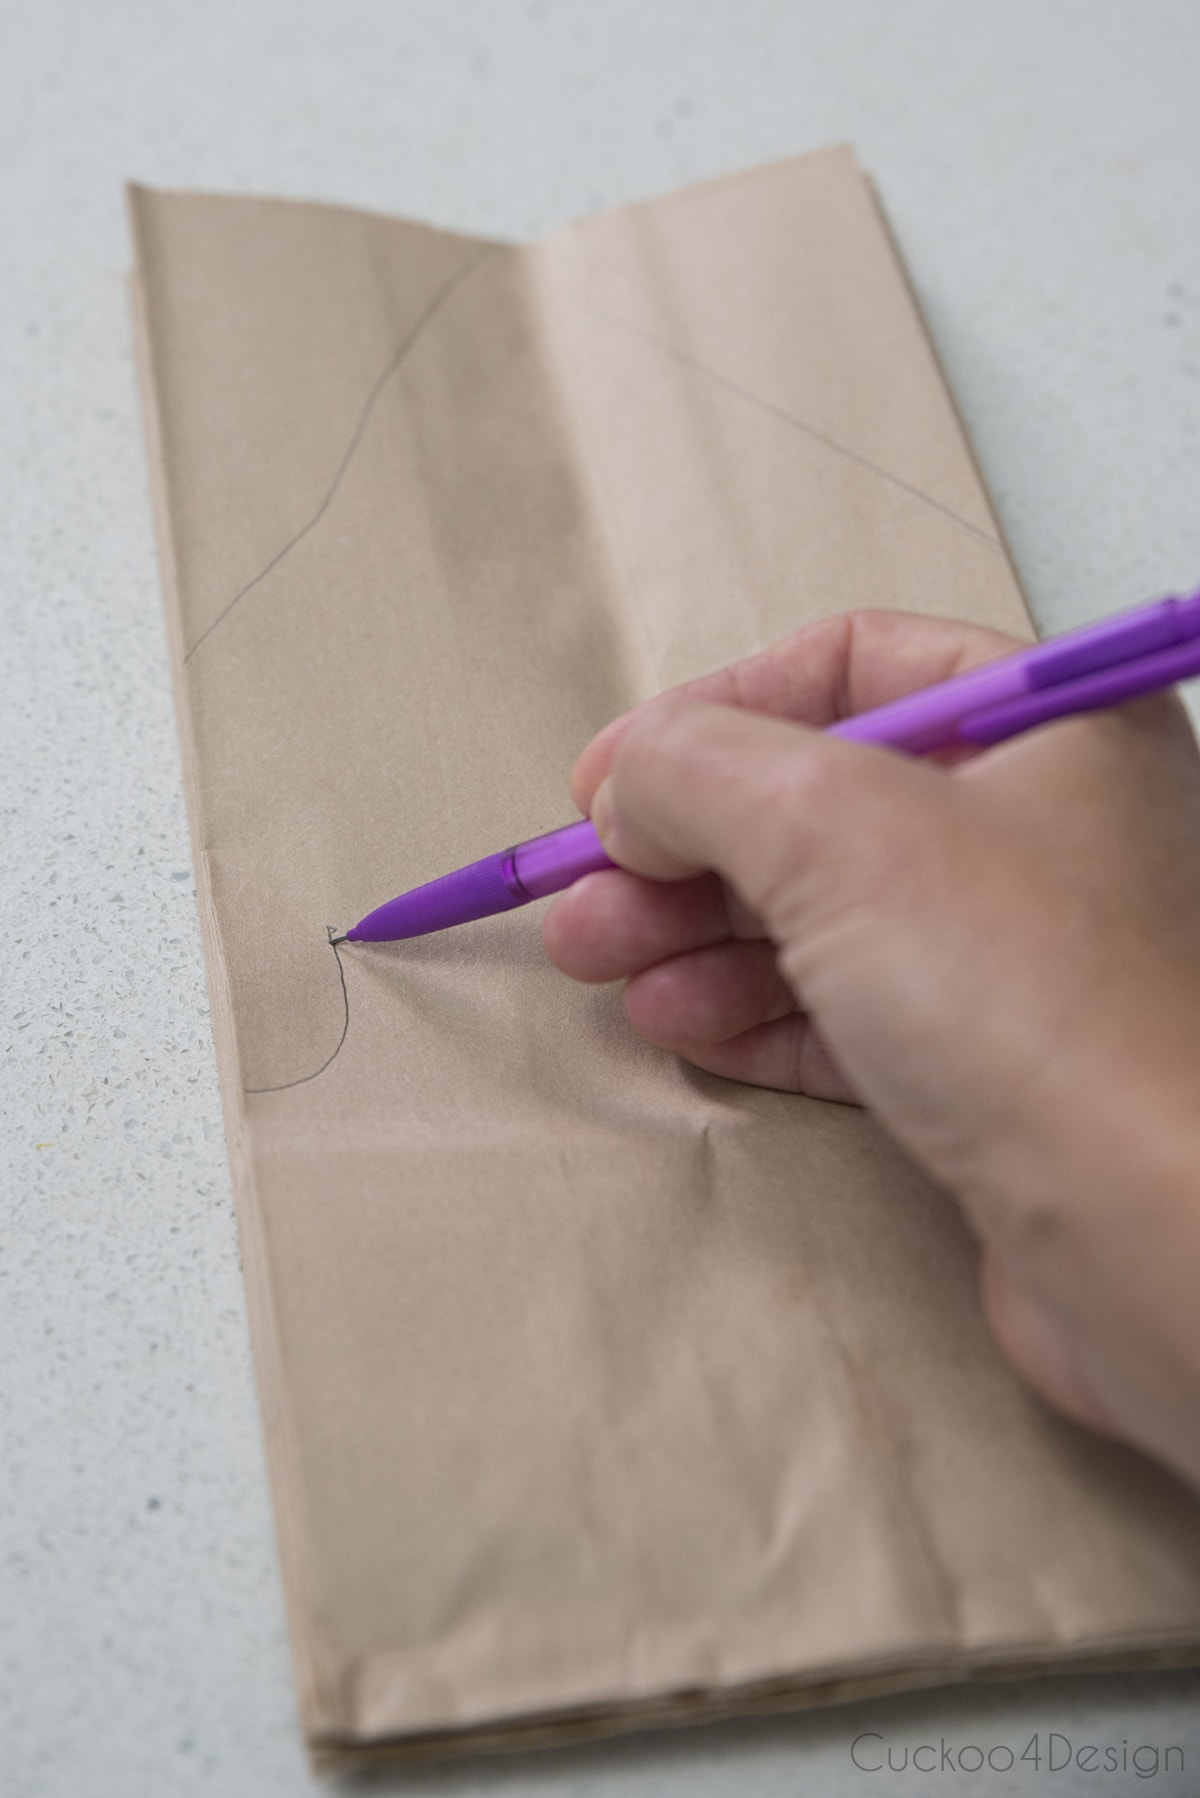 drawing the snowflake pattern onto the lunch bags